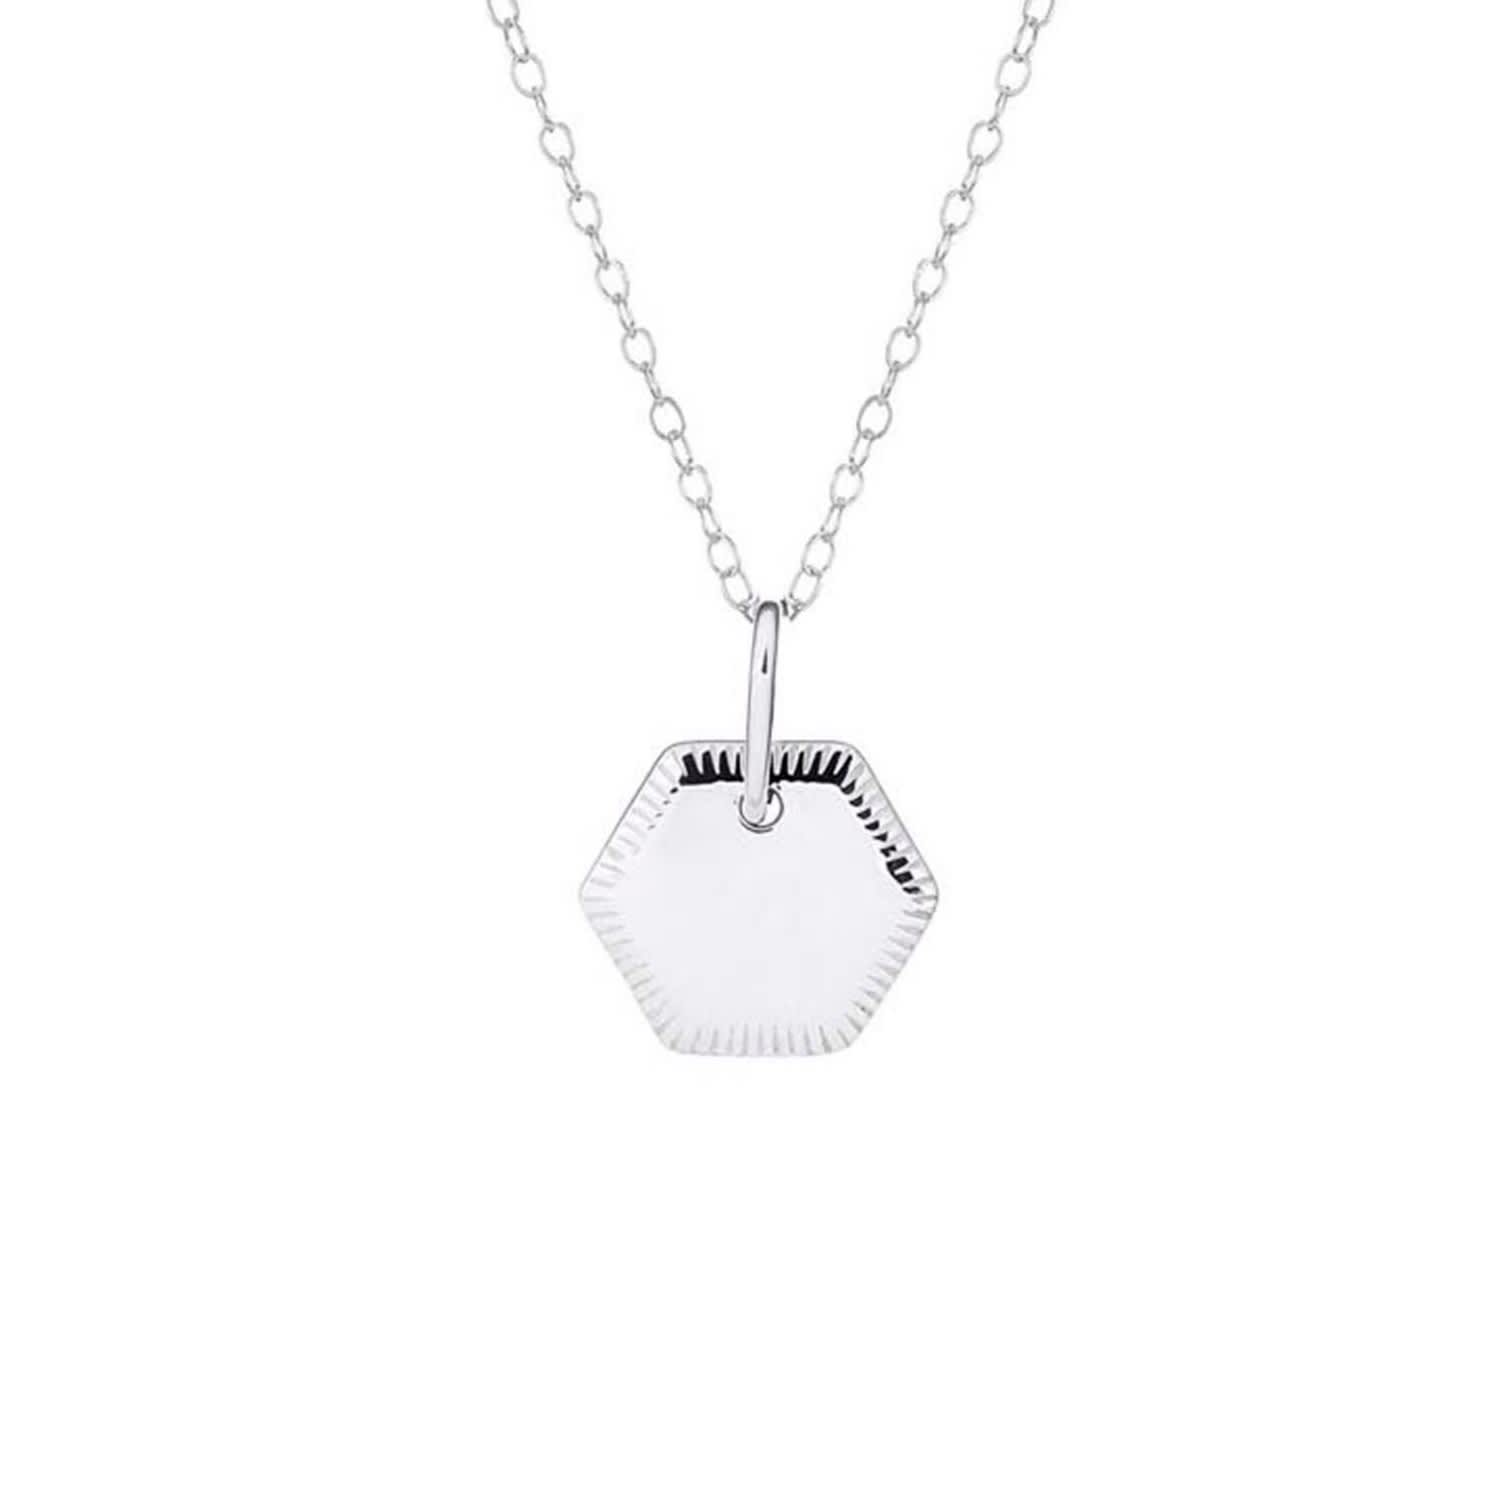 428ca394bf016 Sterling Silver Disc Pendant With Engraved Edge Detail With Chain by One  and One Studio